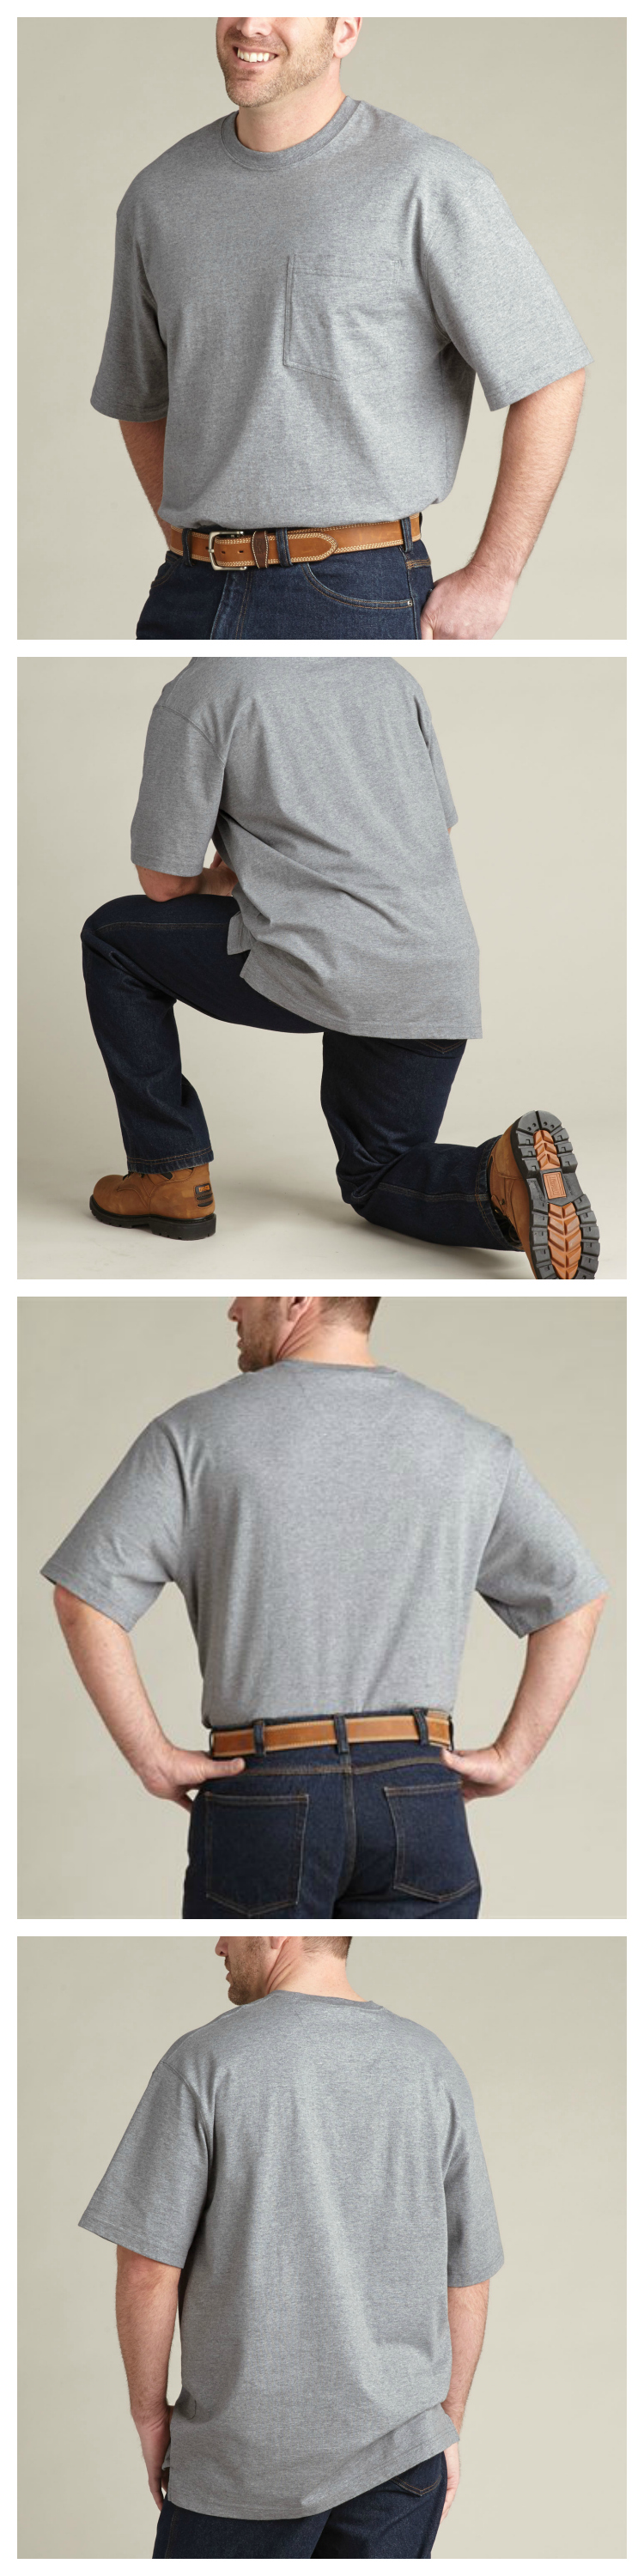 Need tall T-shirts or long shirts to cover your keister? Meet the ...